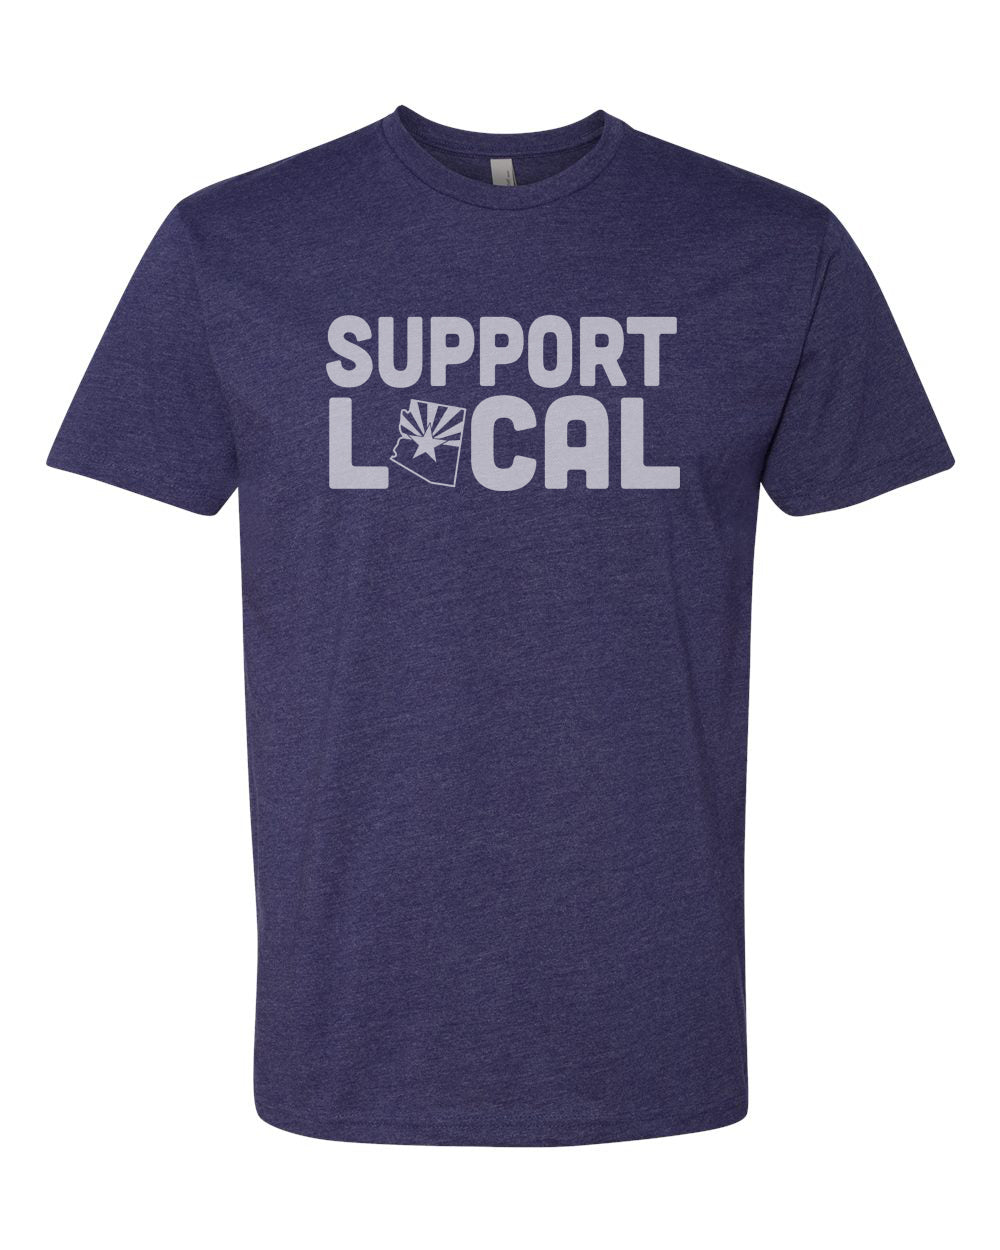 Support Local (AZ PRIDE STORM)